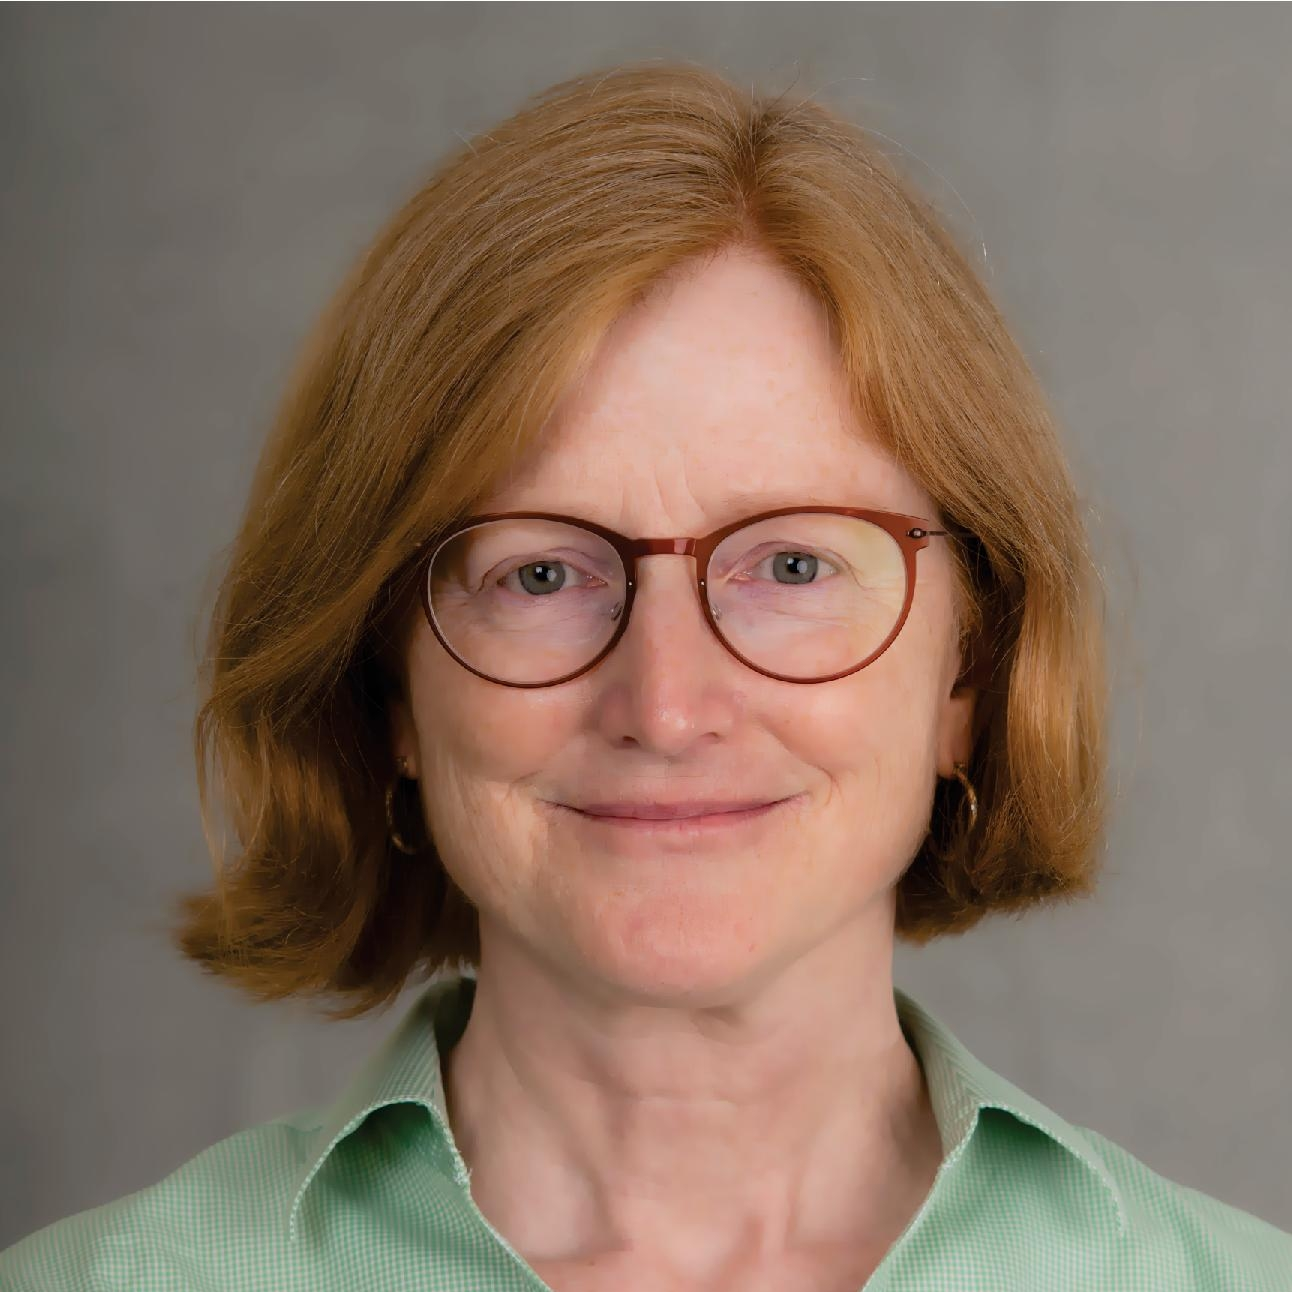 RUTH ANNE EATOCK, PH.D.  Prof. of Neurobiology, Dean, Office of Faculty Affairs, Basic Sciences Division University of Chicago